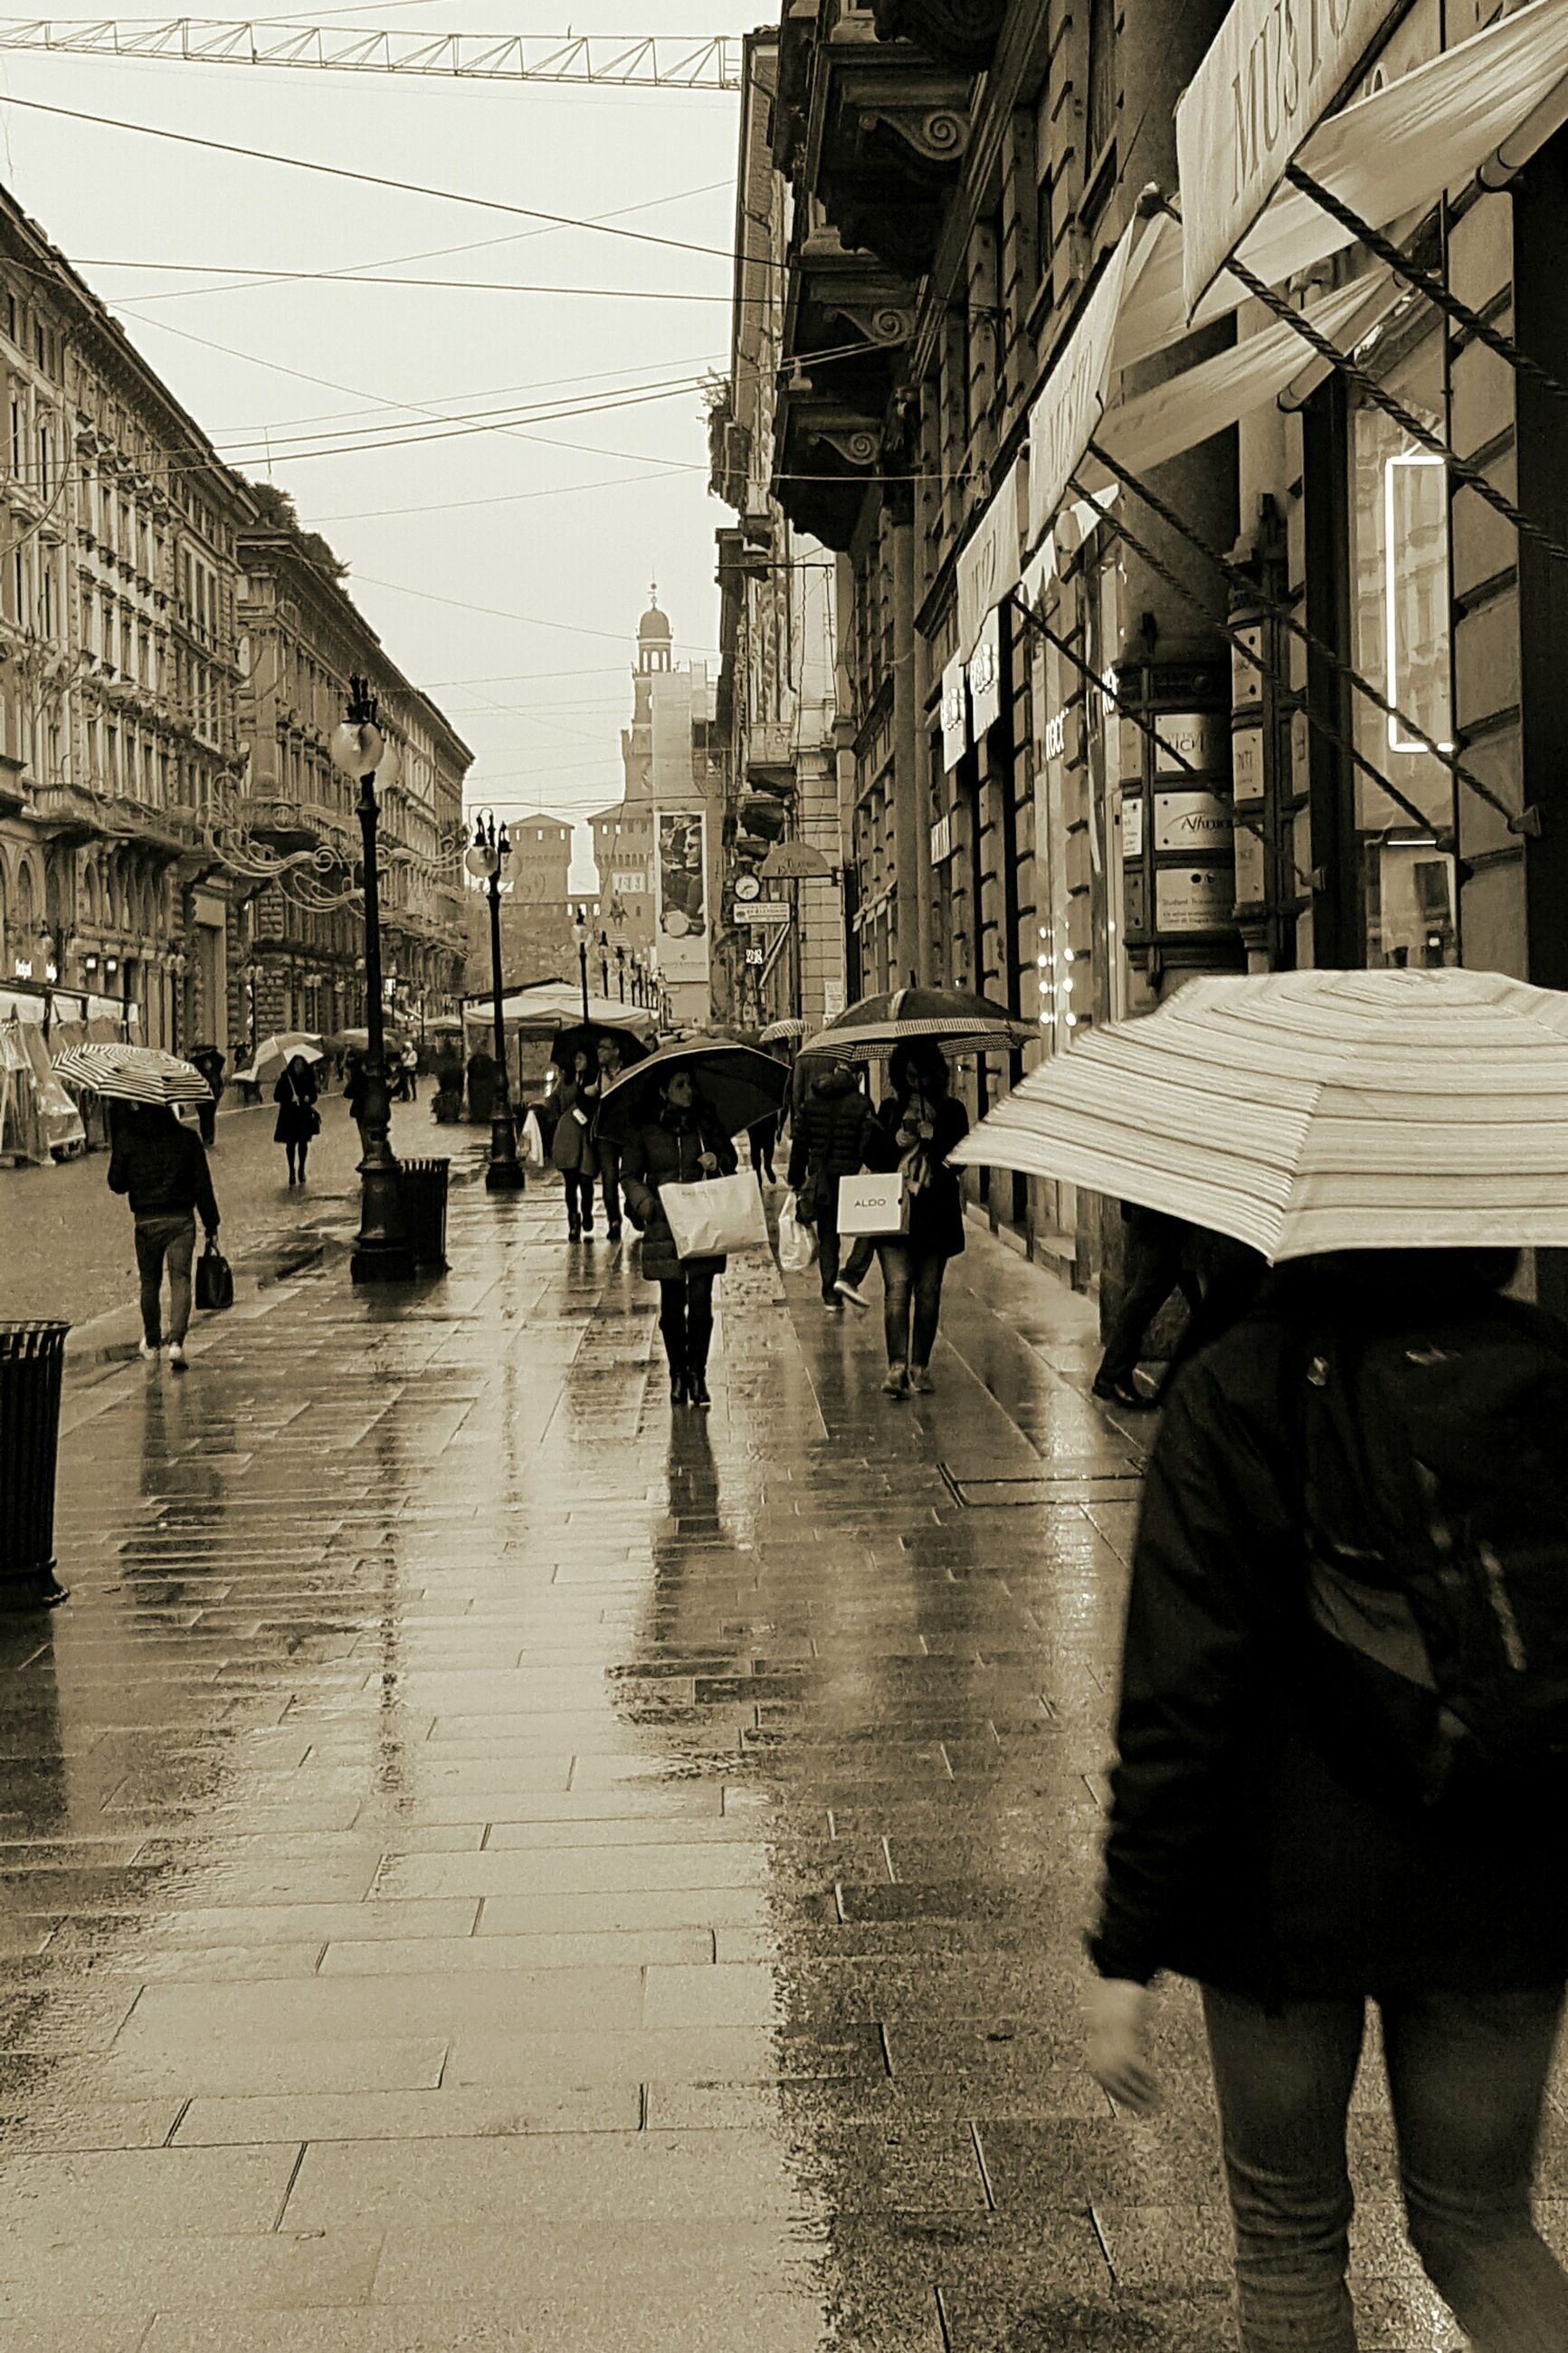 street, city, wet, building exterior, men, people, large group of people, adult, outdoors, water, adults only, extreme weather, day, architecture, only men